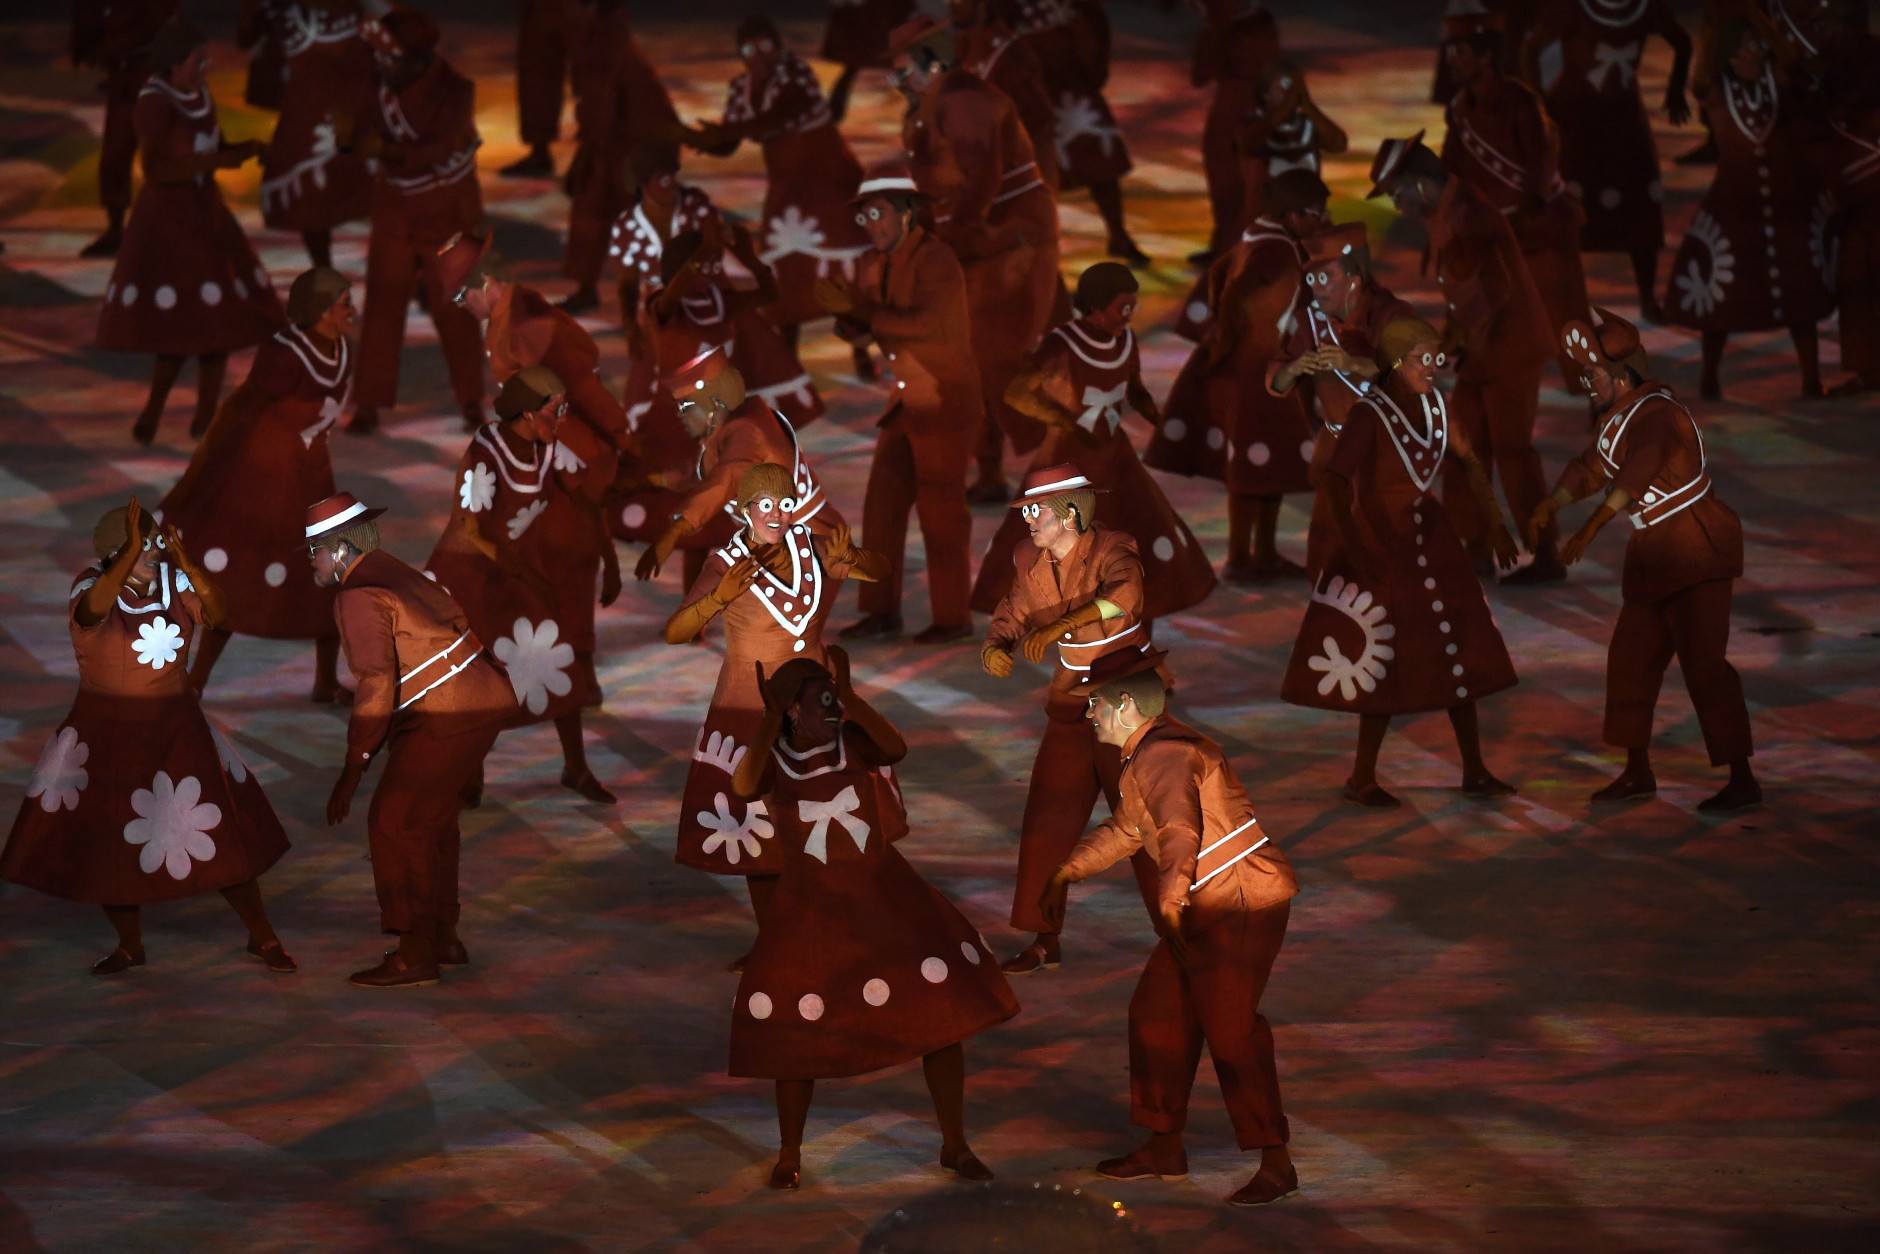 RIO DE JANEIRO, BRAZIL - AUGUST 21:  Dancers  perform in the 'Bringing Clay to Life' segment during the Closing Ceremony on Day 16 of the Rio 2016 Olympic Games at Maracana Stadium on August 21, 2016 in Rio de Janeiro, Brazil.  (Photo by Pascal Le Segretain/Getty Images)